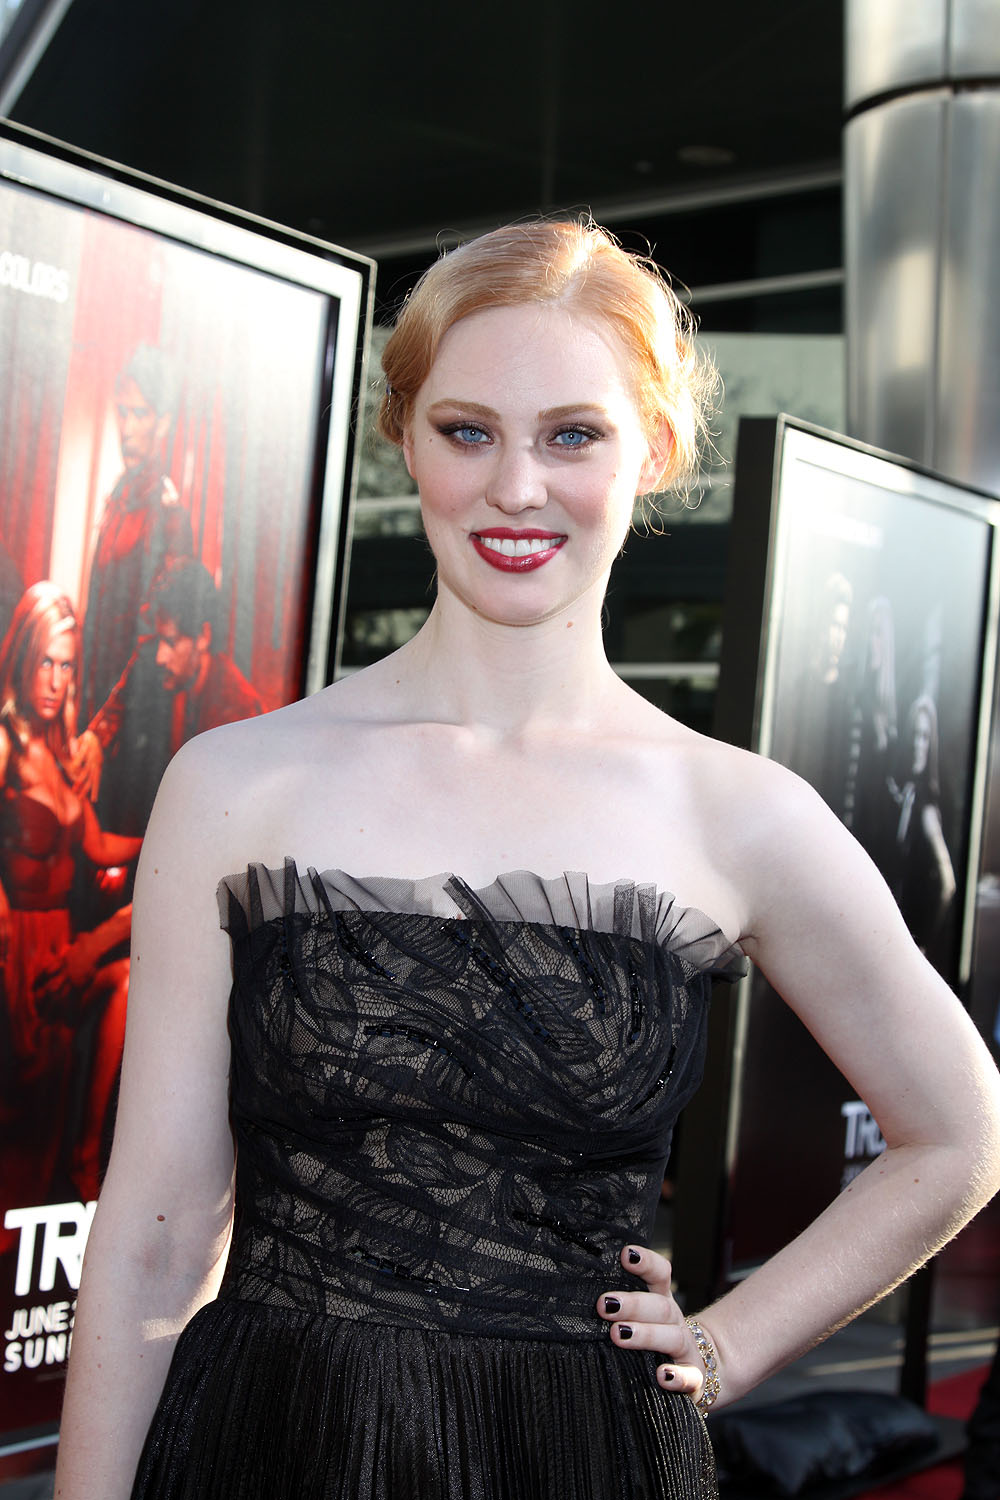 Deborah Ann Woll hd wallpapers, Deborah Ann Woll high resolution wallpapers, Deborah Ann Woll hot hd wallpapers, Deborah Ann Woll hot photoshoot latest, Deborah Ann Woll hot pics hd, Deborah Ann Woll photos hd,Deborah Ann Woll photos hd, Deborah Ann Woll hot photoshoot latest, Deborah Ann Woll hot pics hd, Deborah Ann Woll hot hd wallpapers,  Deborah Ann Woll hd wallpapers,  Deborah Ann Woll high resolution wallpapers,  Deborah Ann Woll hot photos,  Deborah Ann Woll hd pics,  Deborah Ann Woll cute stills,  Deborah Ann Woll age,  Deborah Ann Woll boyfriend,  Deborah Ann Woll stills,  Deborah Ann Woll latest images,  Deborah Ann Woll latest photoshoot,  Deborah Ann Woll hot navel show,  Deborah Ann Woll navel photo,  Deborah Ann Woll hot leg show,  Deborah Ann Woll hot swimsuit,  Deborah Ann Woll  hd pics,  Deborah Ann Woll  cute style,  Deborah Ann Woll  beautiful pictures,  Deborah Ann Woll  beautiful smile,  Deborah Ann Woll  hot photo,  Deborah Ann Woll   swimsuit,  Deborah Ann Woll  wet photo,  Deborah Ann Woll  hd image,  Deborah Ann Woll  profile,  Deborah Ann Woll  house,  Deborah Ann Woll legshow,  Deborah Ann Woll backless pics,  Deborah Ann Woll beach photos,  Deborah Ann Woll twitter,  Deborah Ann Woll on facebook,  Deborah Ann Woll online,indian online view,Deborah Ann Woll biodata,Deborah Ann Woll mini biography,biography for Deborah Ann Woll,biodata for Deborah Ann Woll,mini biography for Deborah Ann Woll,Deborah Ann Woll keywords